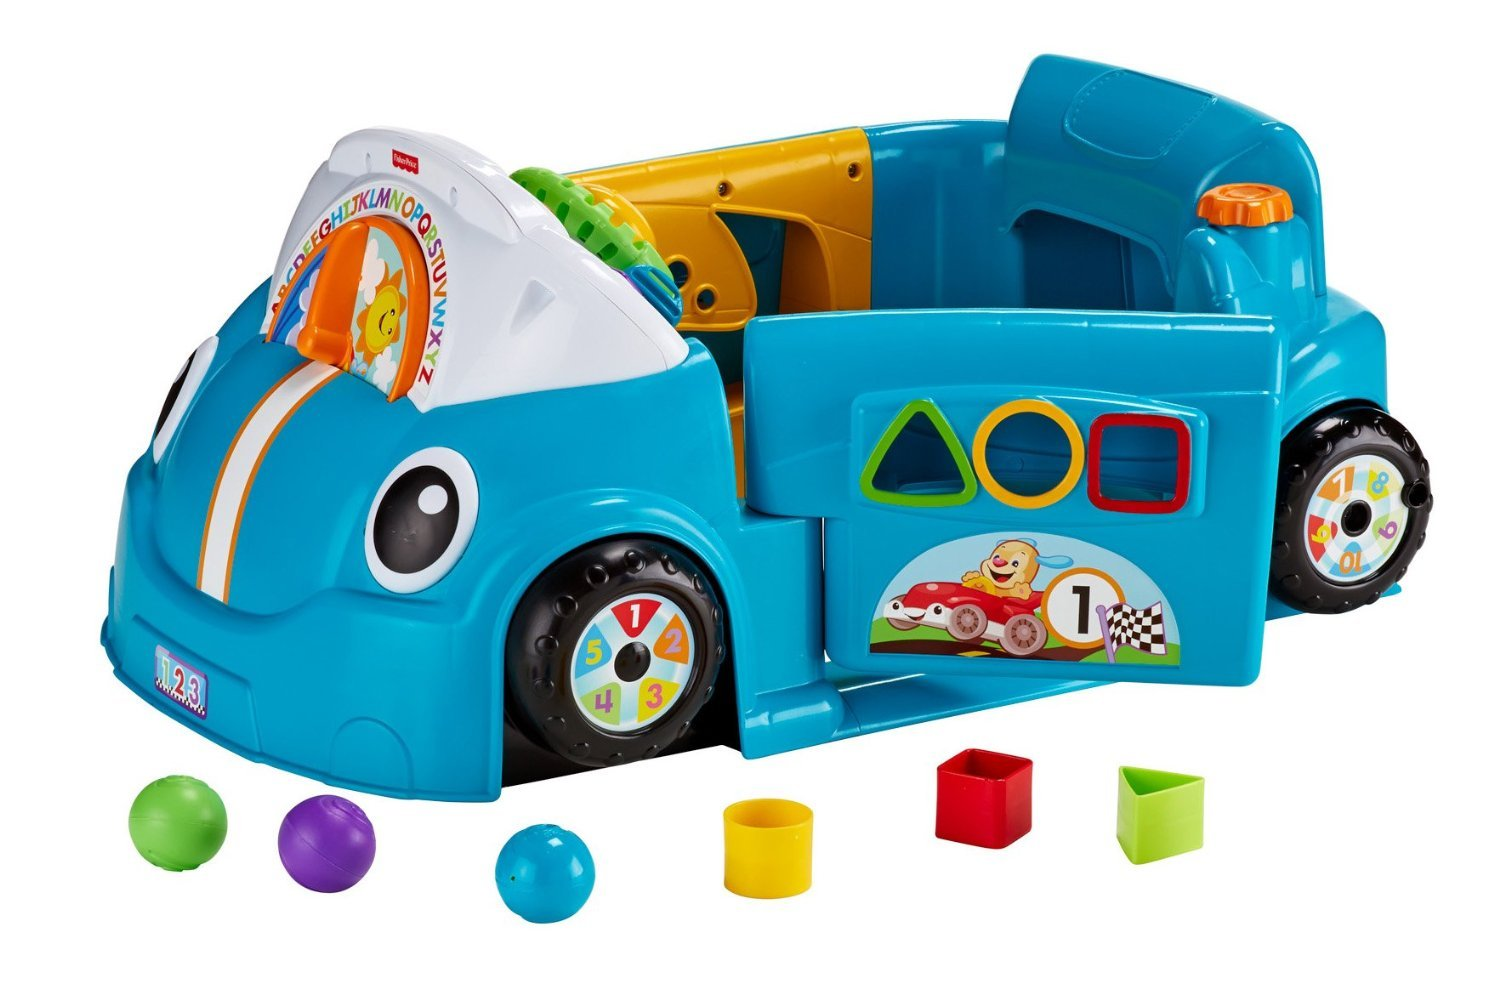 The Ultimate List Of Cool Toys For 1 Year Old Boys In 2017